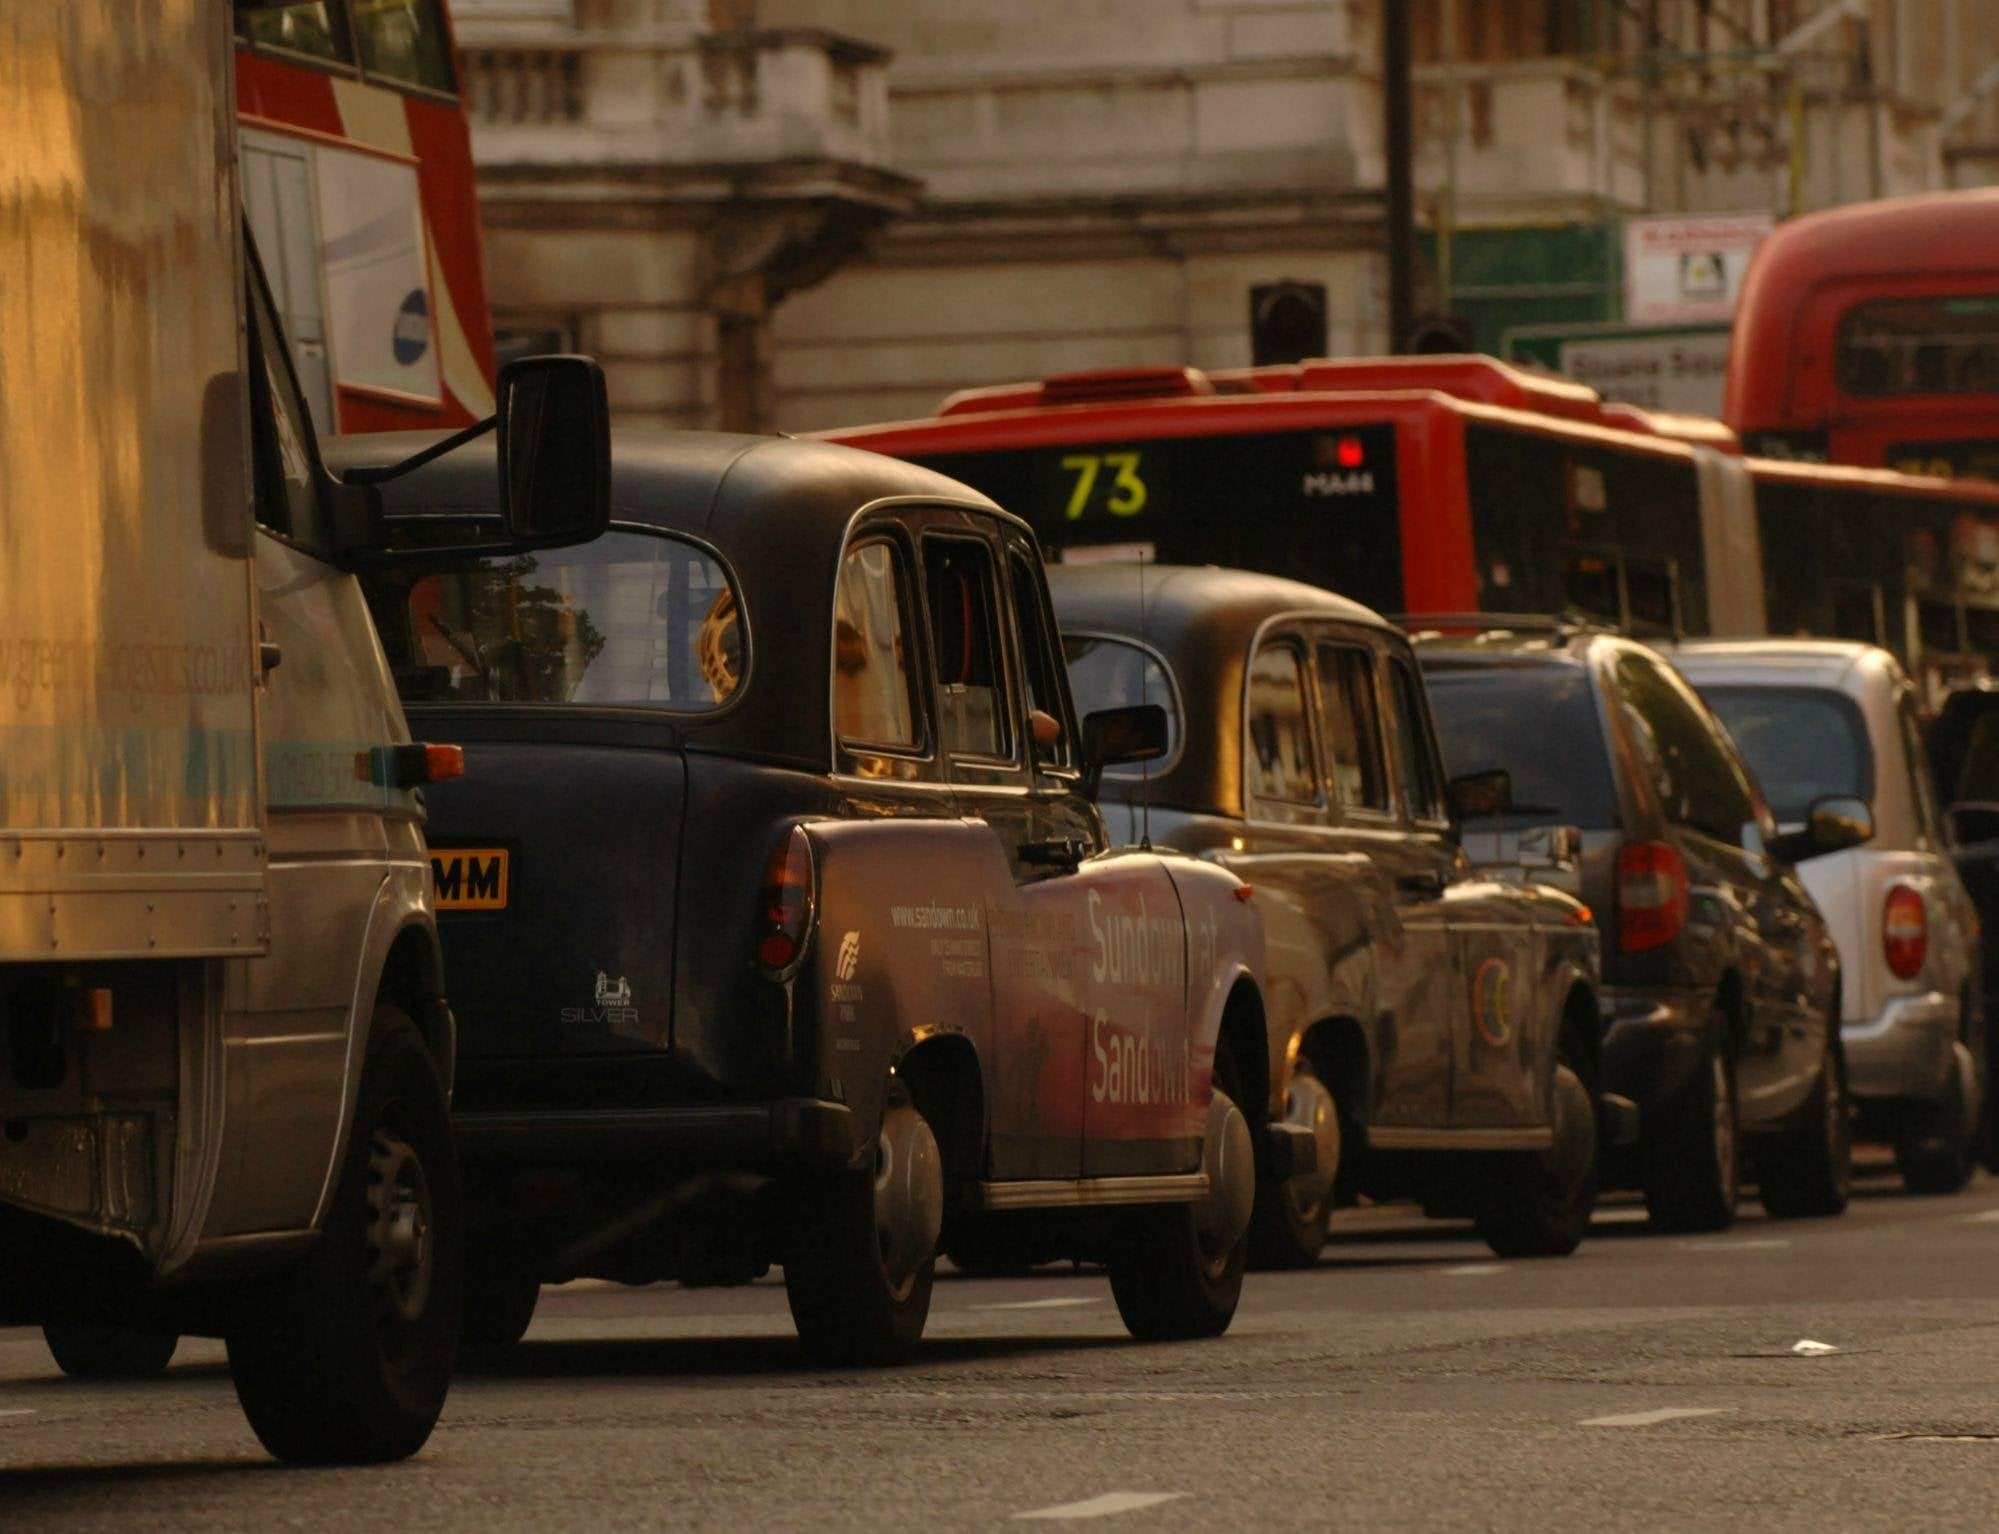 A YouGov poll suggests most Londoners want diesel vehicles banned